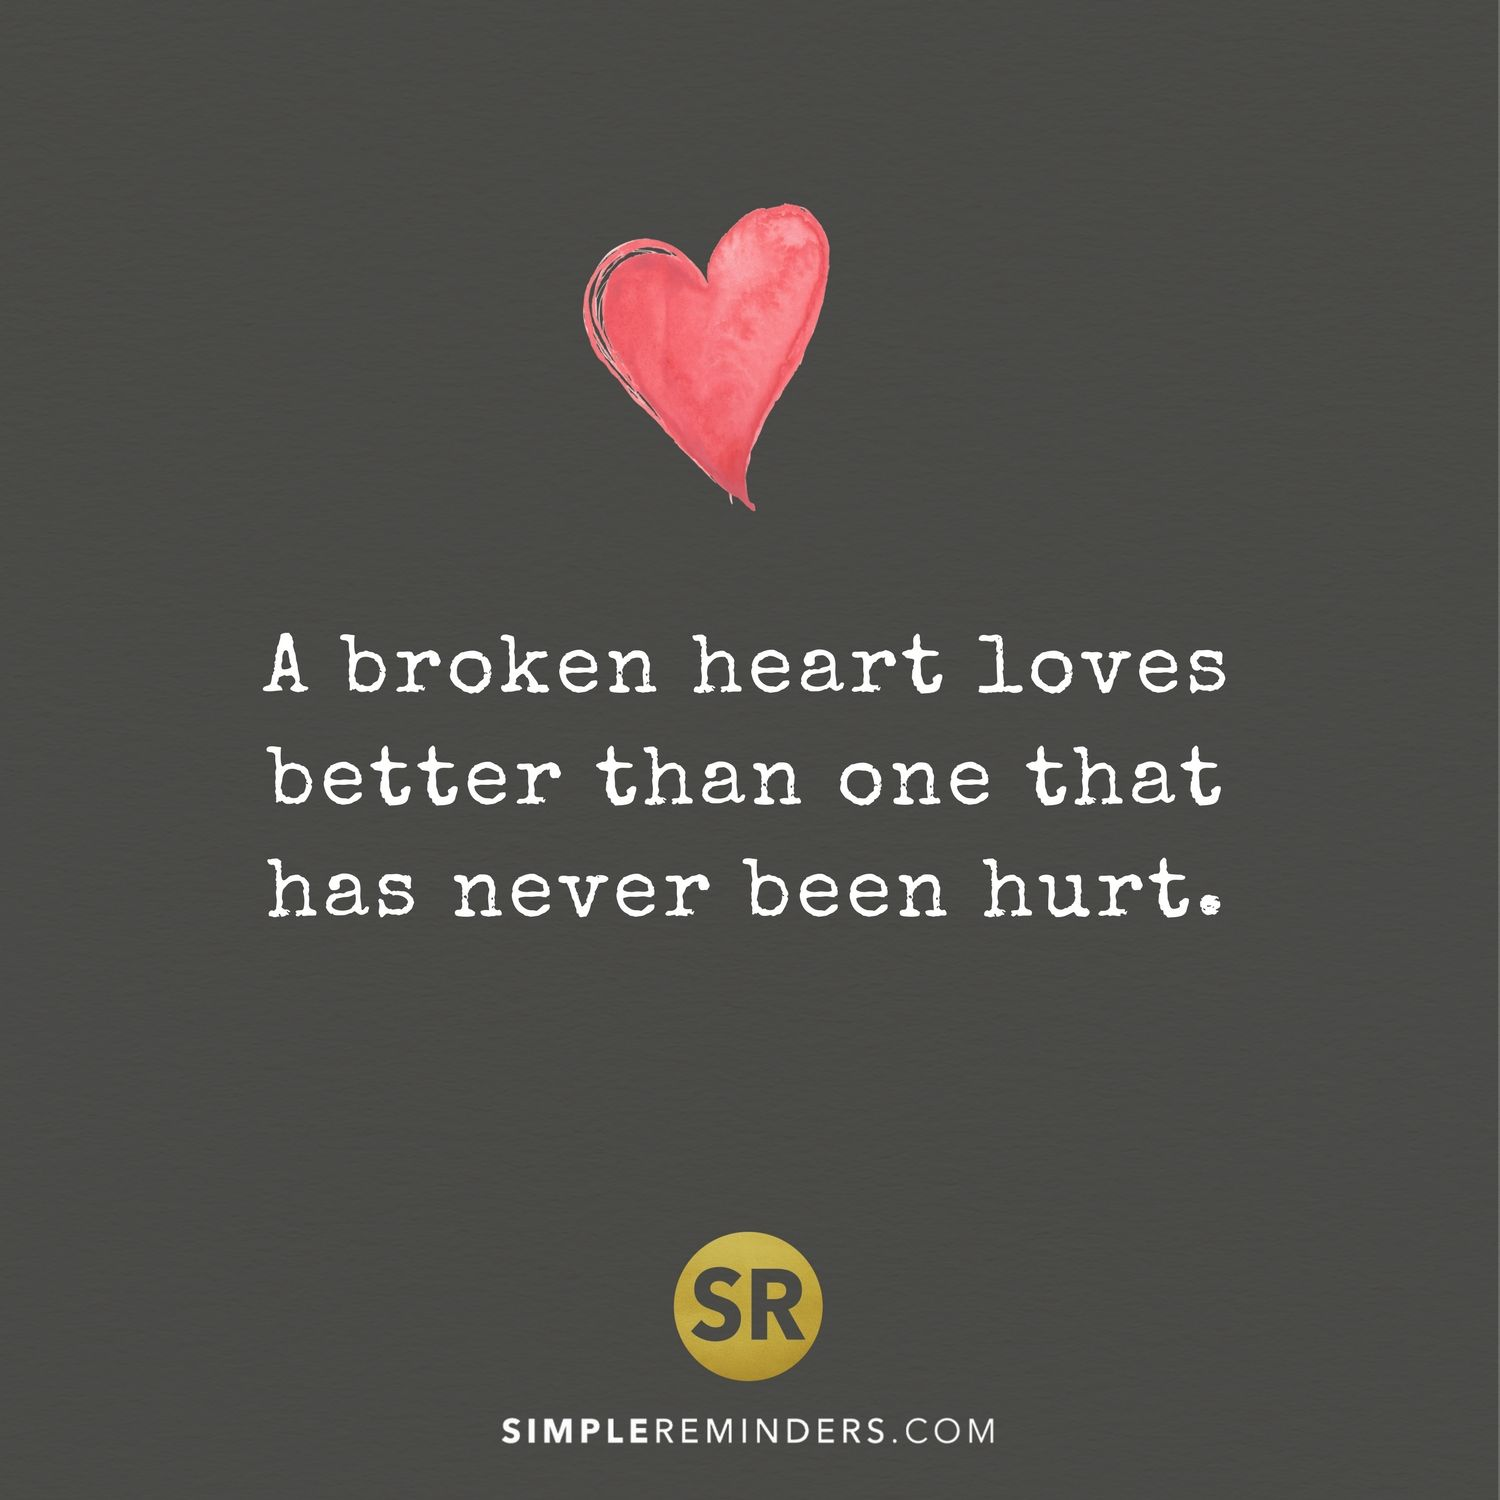 Https Www Somewherelost Com Quote Of The Day 17 Broken Heart Memes Broken Heart Meme Broken Heart Pictures